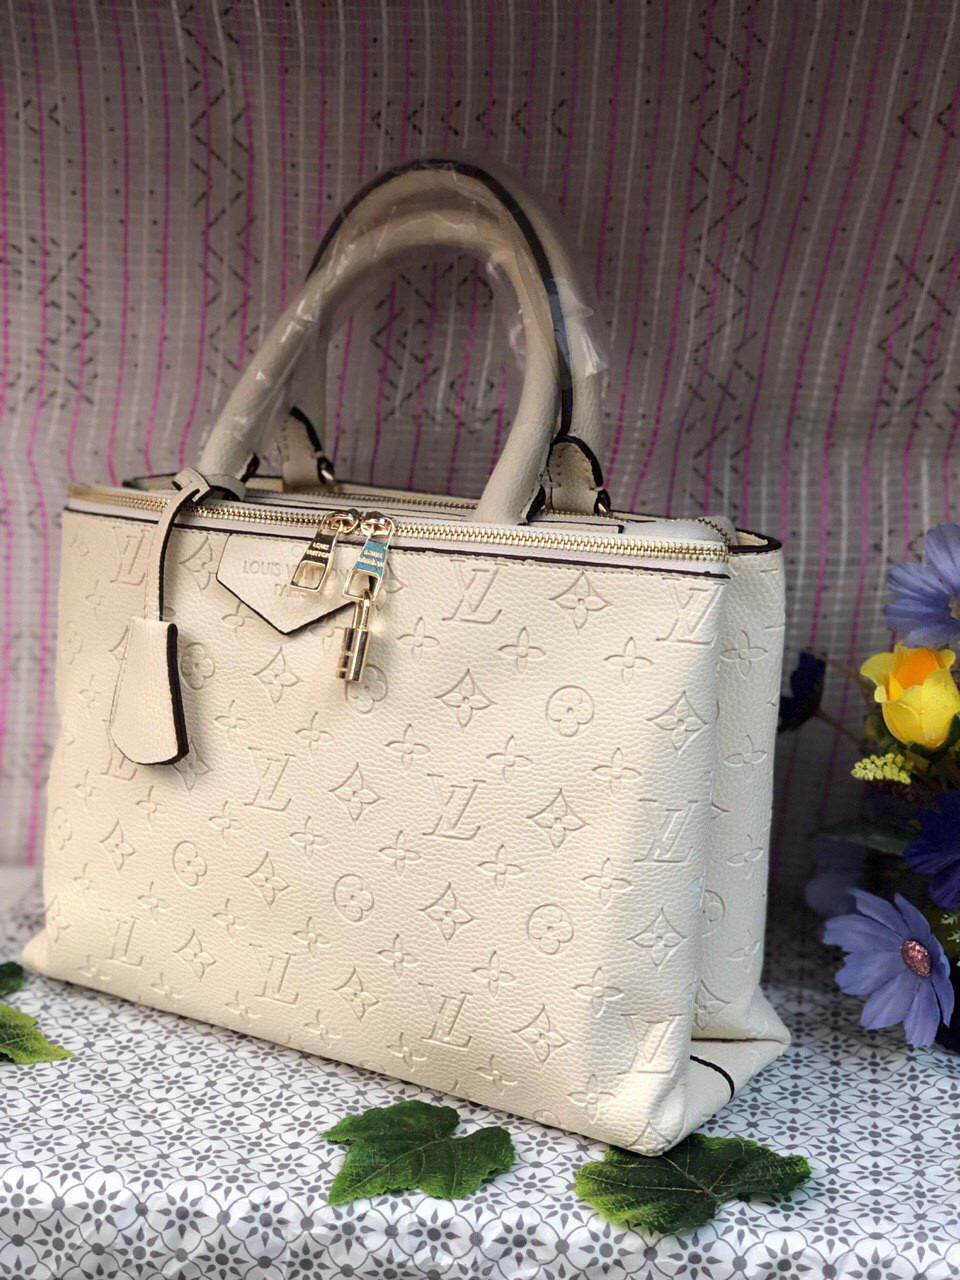 Сумка Louis Vuitton LV (реплика луи виттон) white